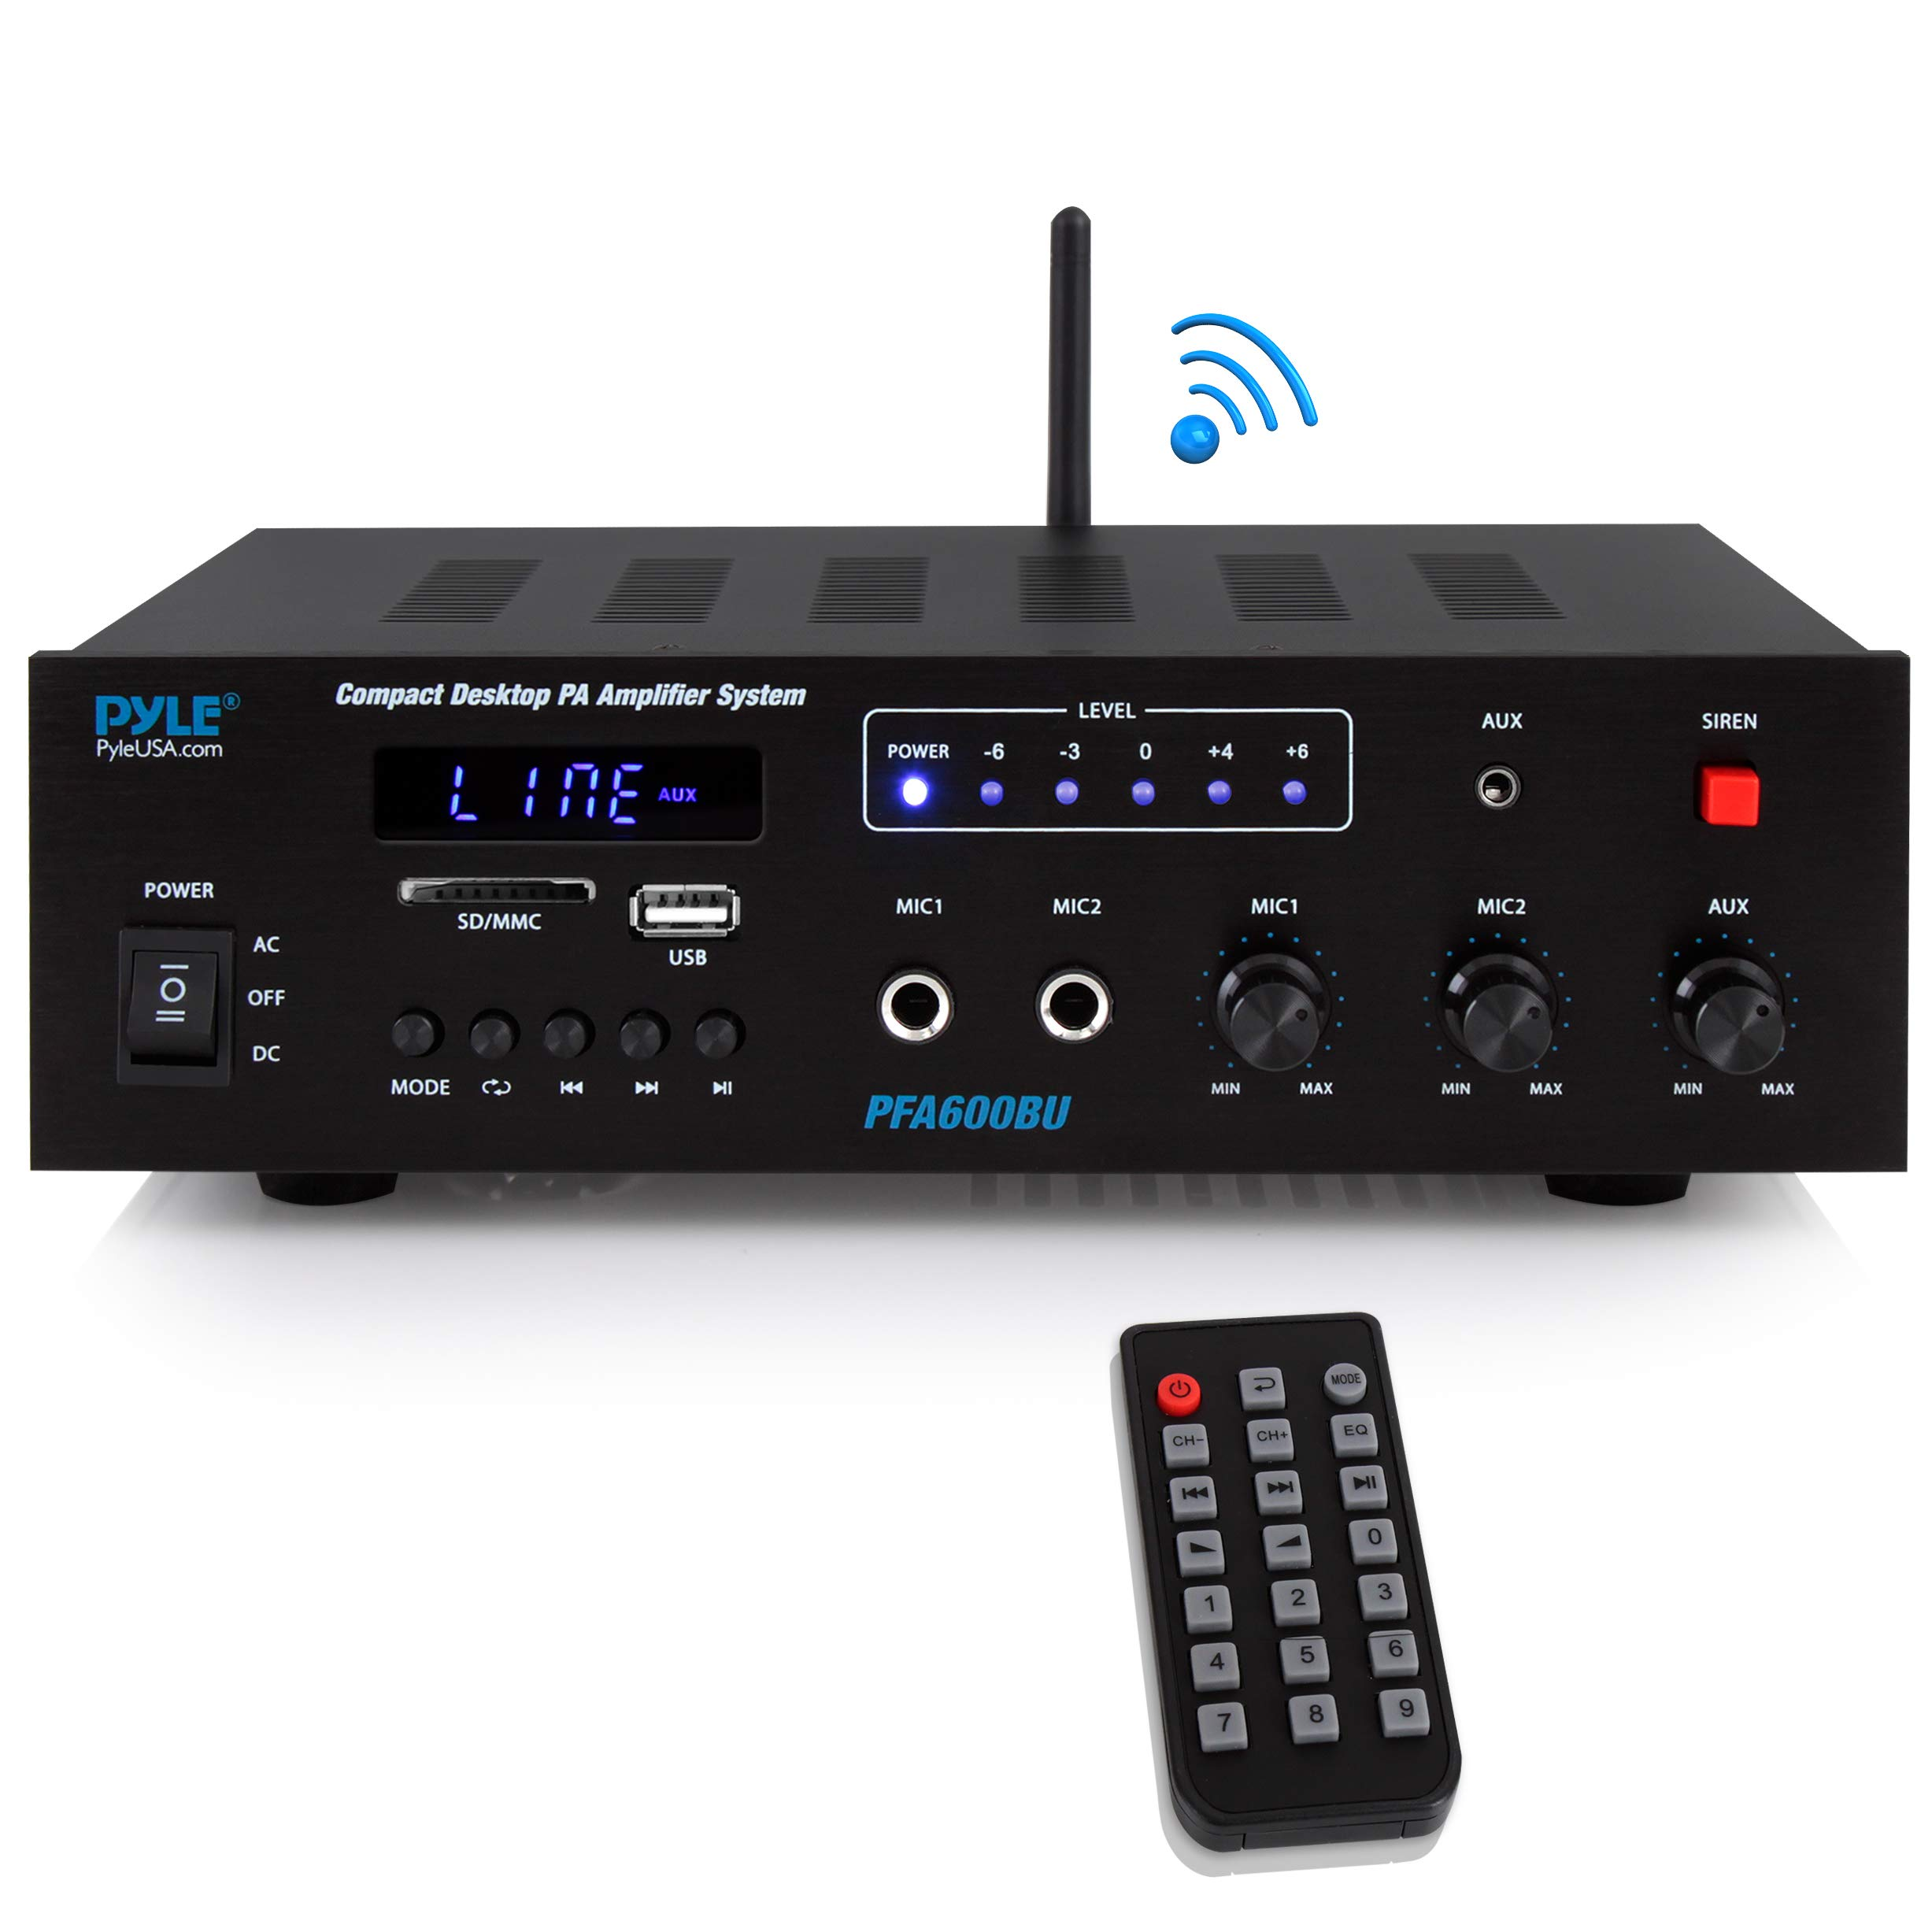 Wireless Bluetooth Karaoke Amplifier - 300 Watts 2 Channel  Digital Home Audio PA Receiver System 2 Microphone Input Control, FM Radio, USB,12 Volt Power Option - Pyle PFA600BU by Pyle